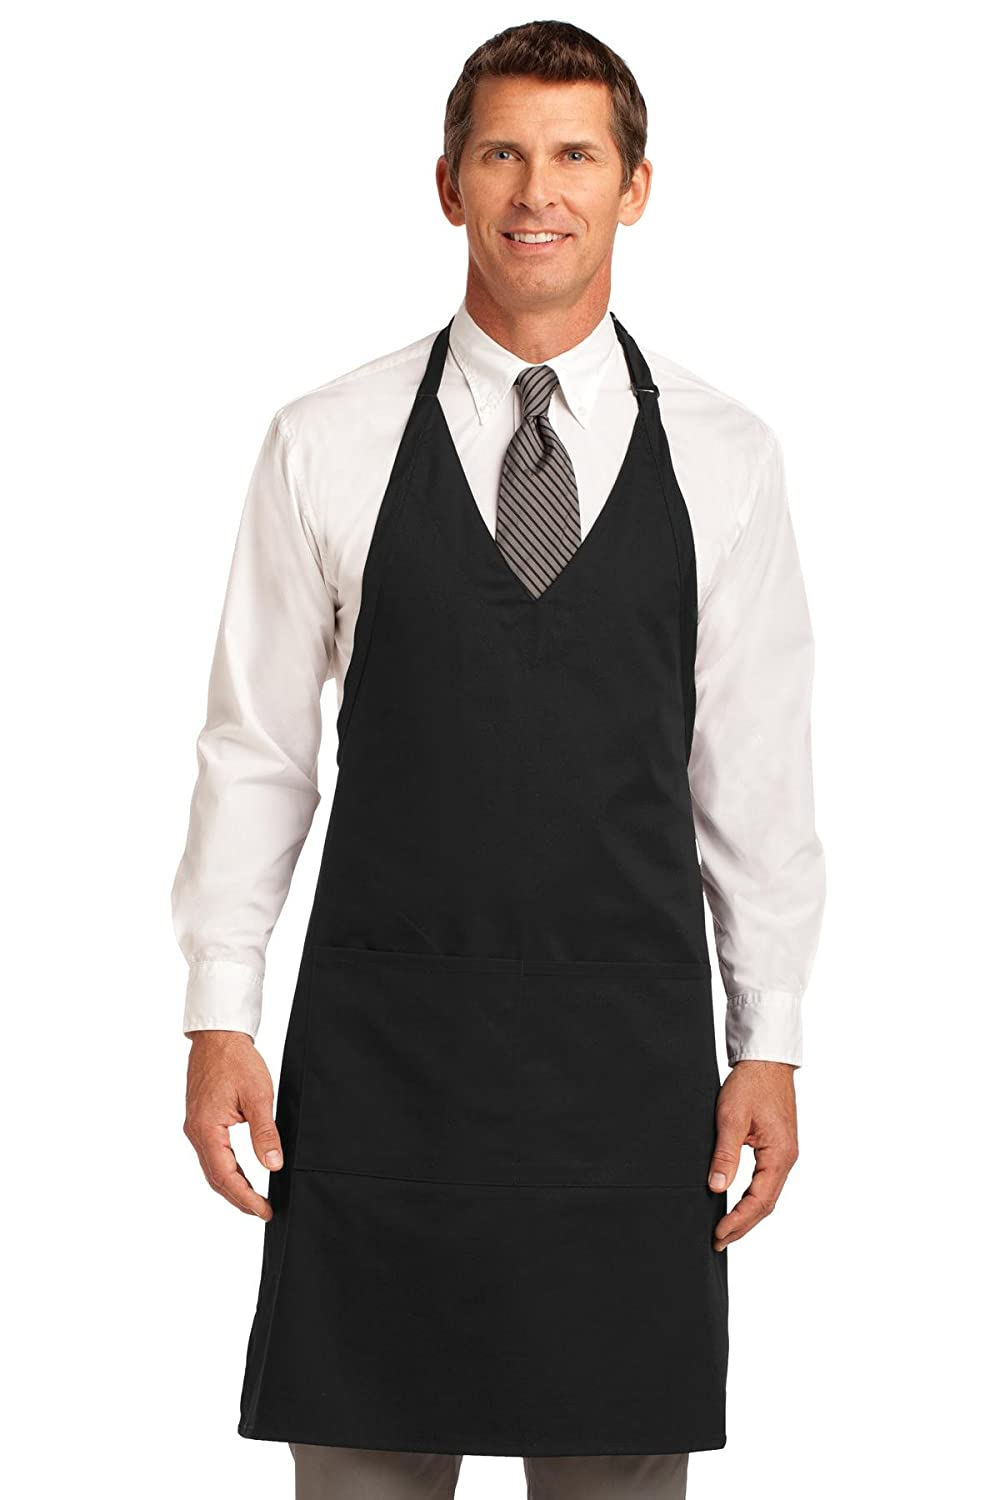 Port Authority Men's Easy Care Tuxedo Apron with Stain Release 900143